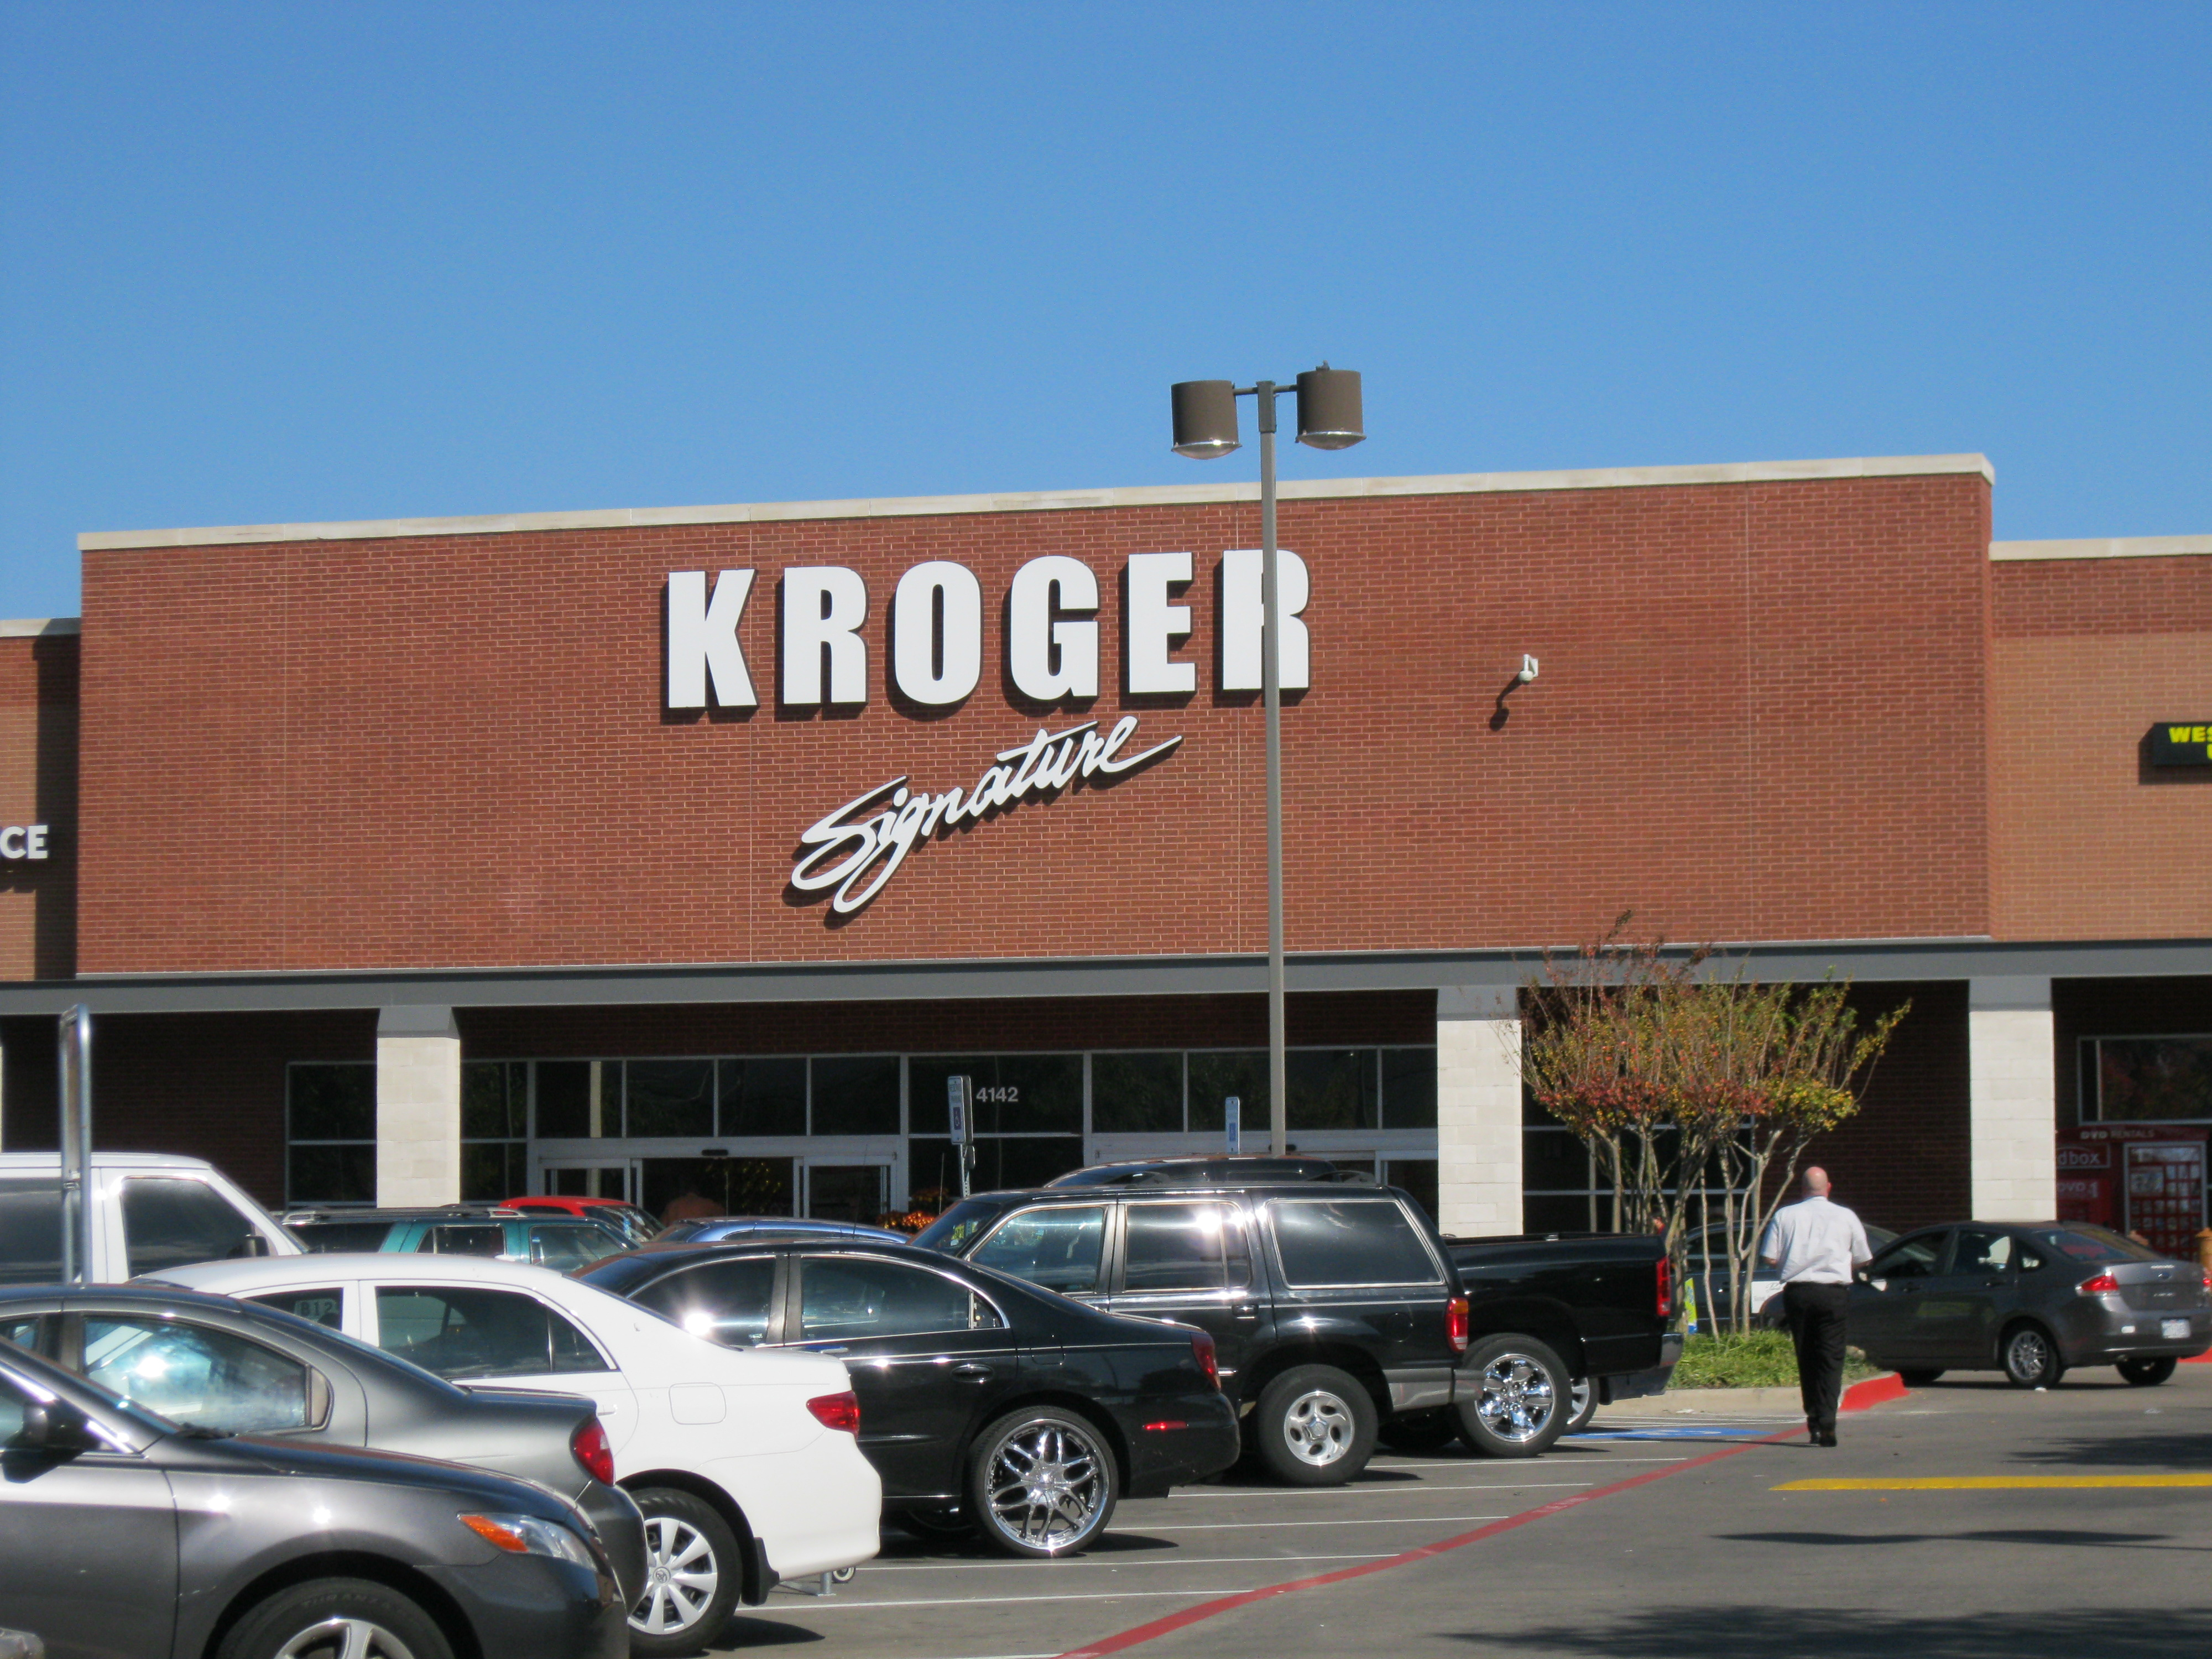 Kroger adds security to parking lot to prevent late night noise, partying